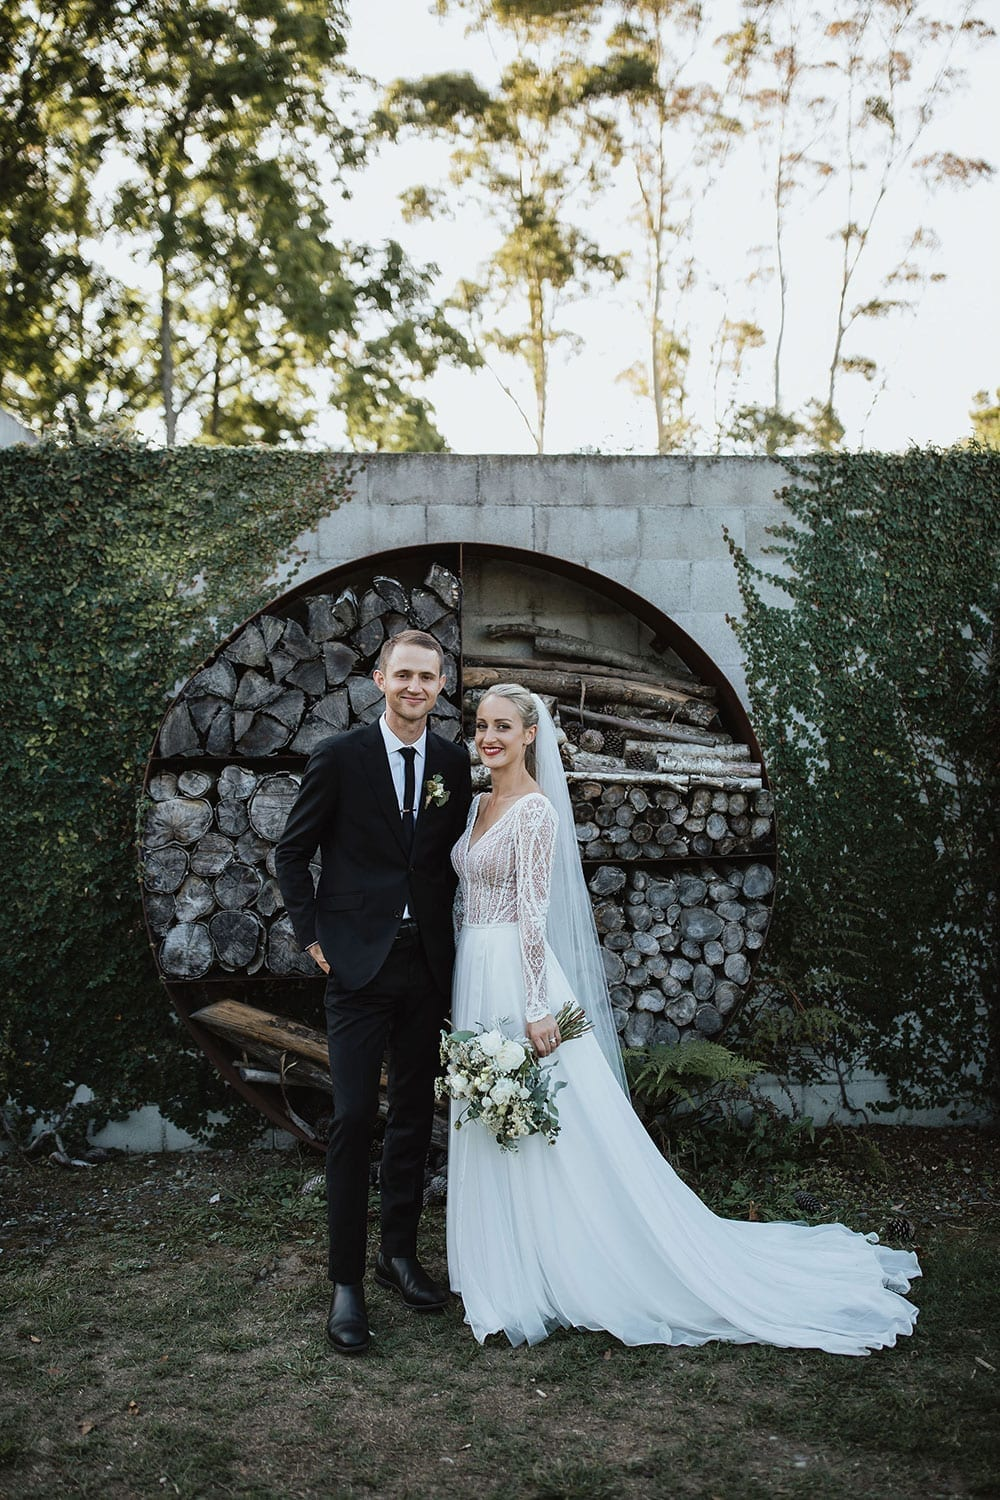 Vinka Design Features Real Weddings - Bride in custom made gown with bold lace bodice with fitted, long, beaded lace sleeves and floating skirt. With groom